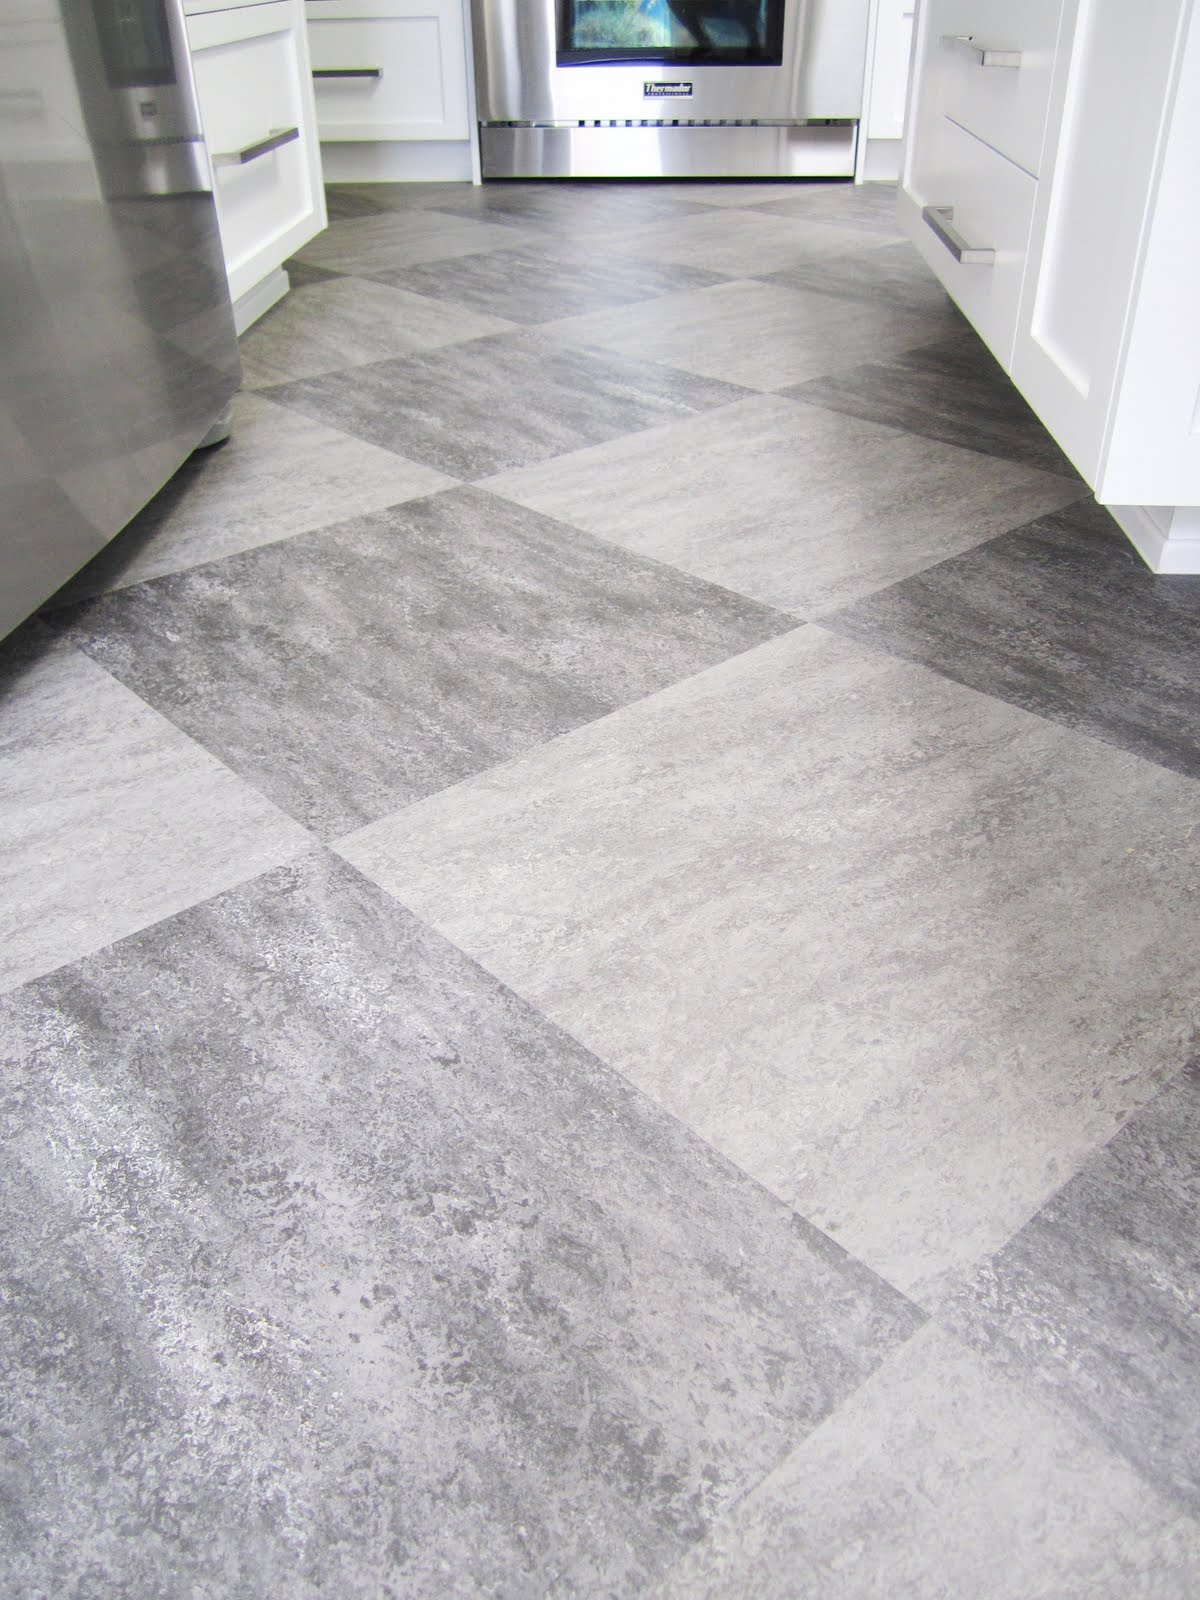 Porcelain Tile Flooring For Kitchen Similiar Black And White Kitchen Gray Tile Floor Keywords